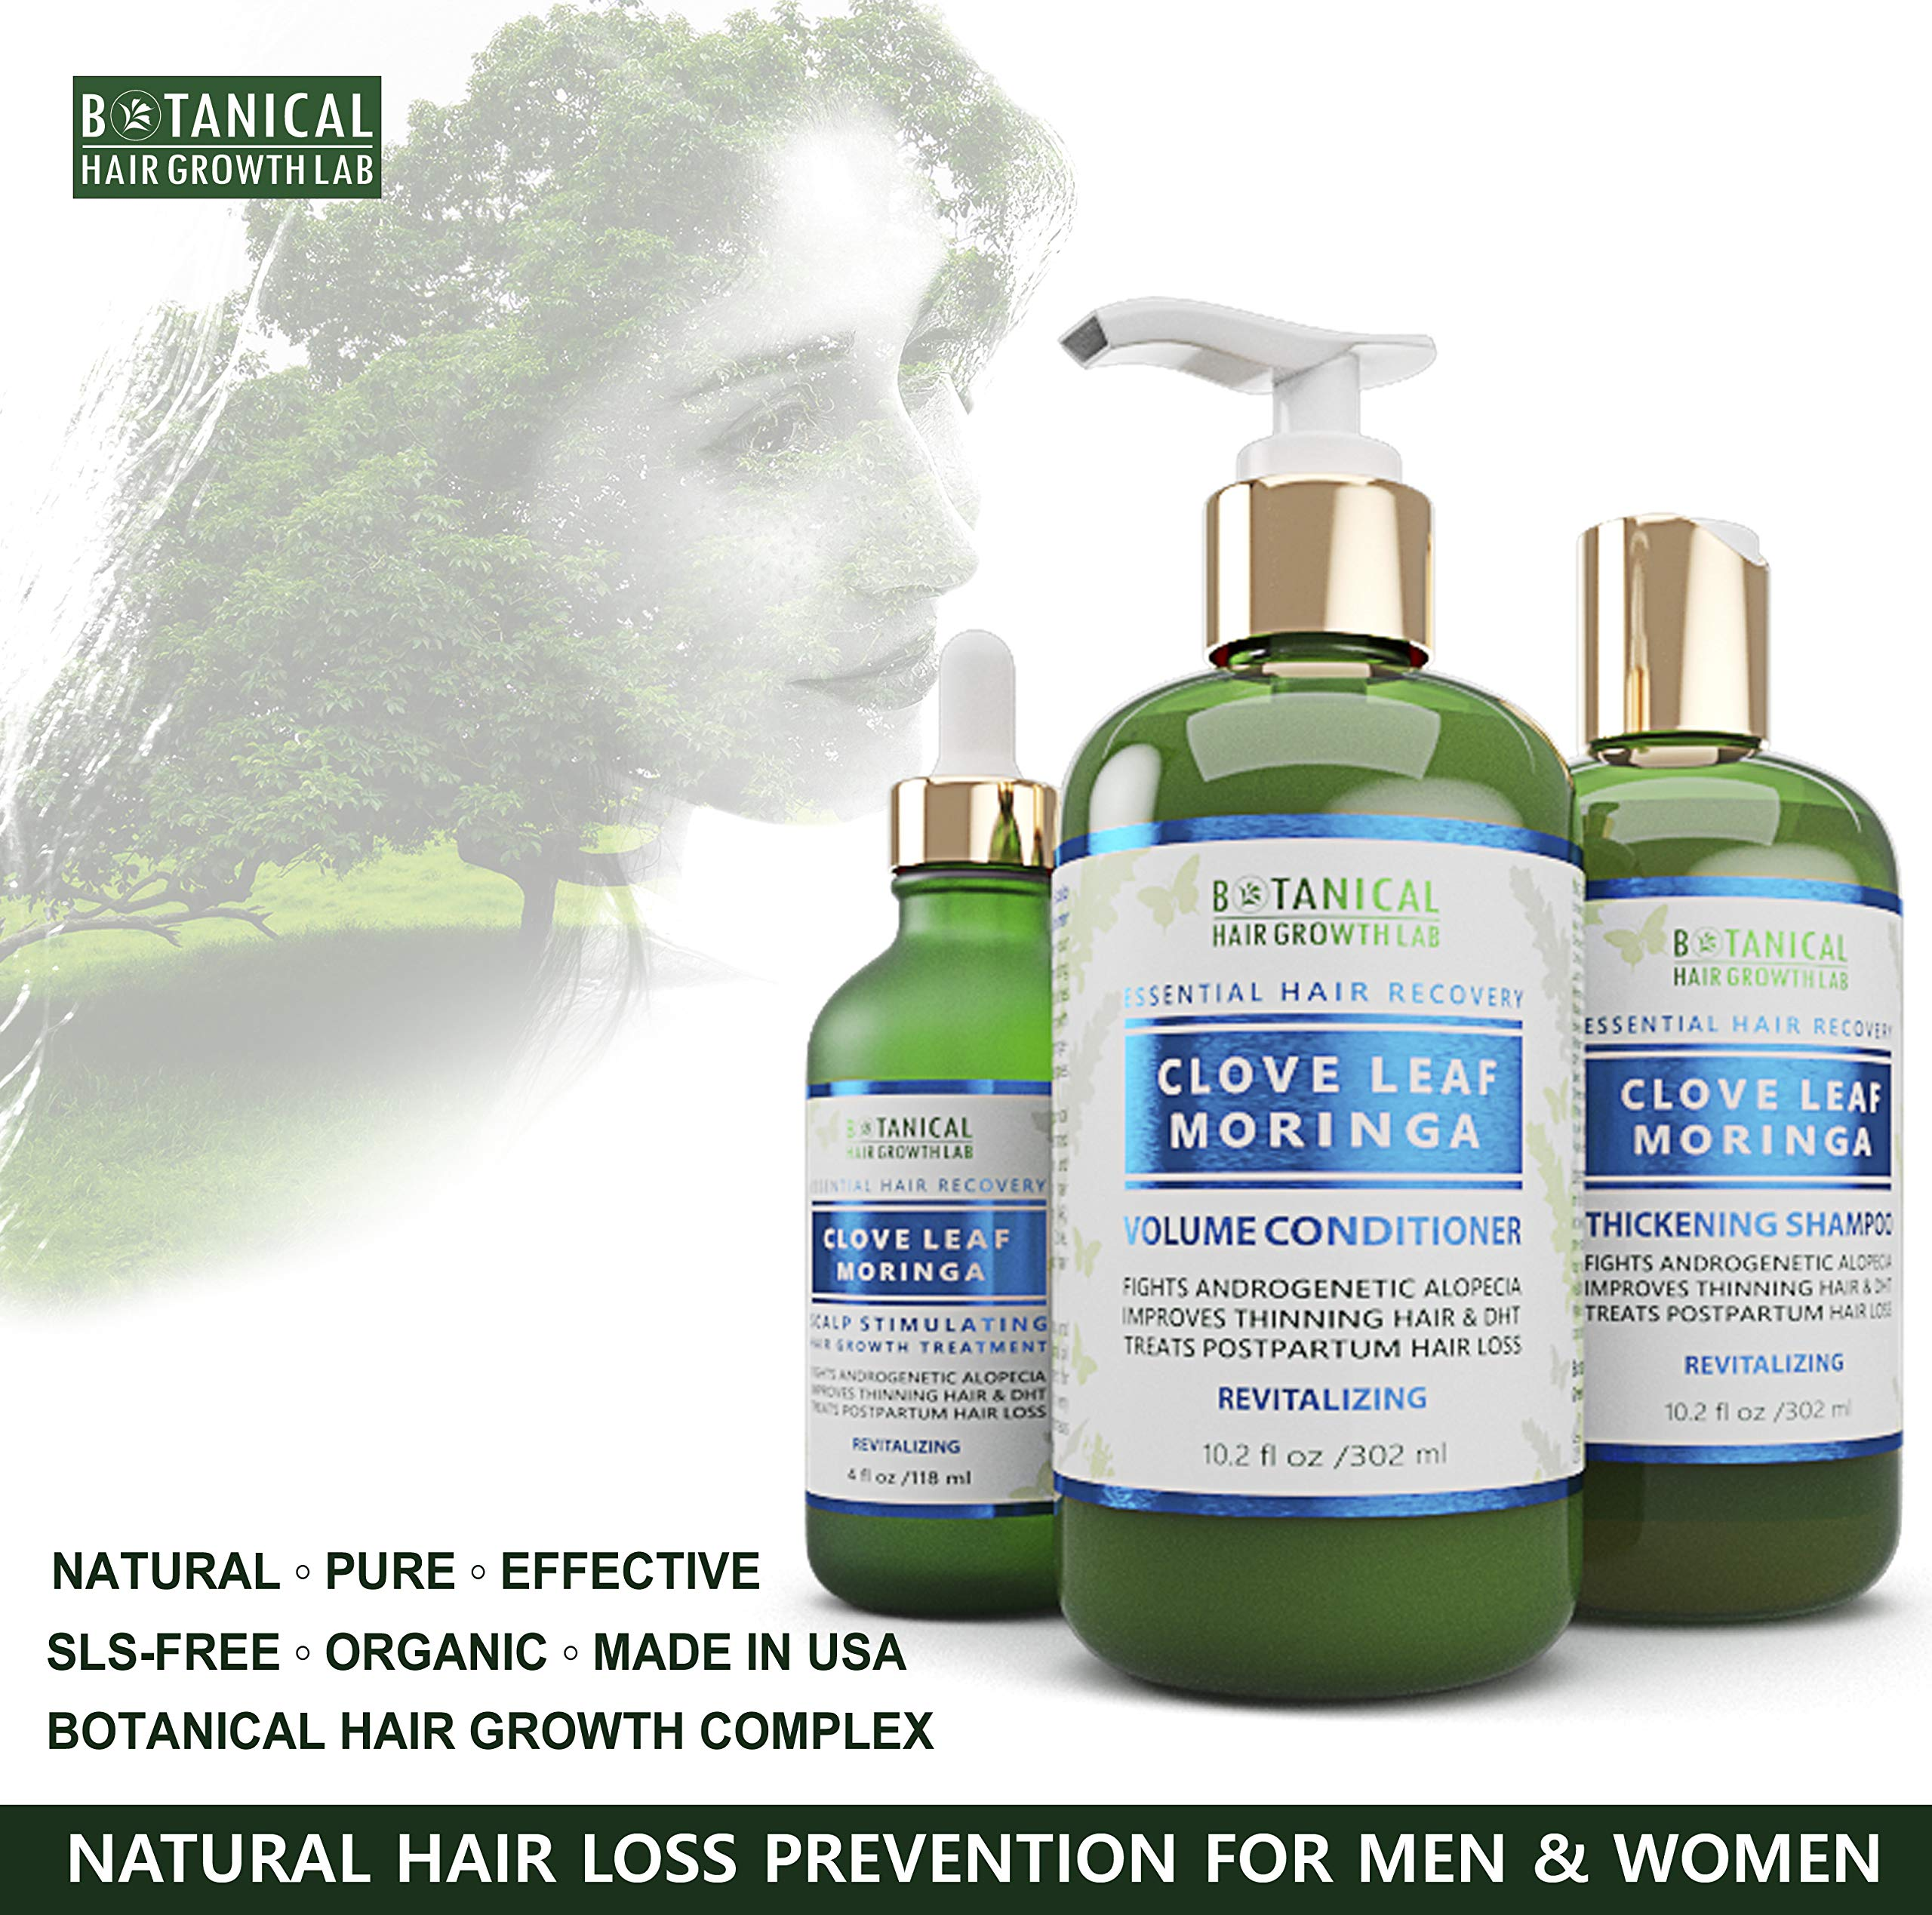 Botanical Hair Growth Lab Biotin Conditioner - Clove Leaf Moringa Formula - Anti Hair Loss Complex - DHT Blockers, Sulfate Free, Natural Ingredients for Men & Women by BOTANICAL HAIR GROWTH LAB (Image #9)